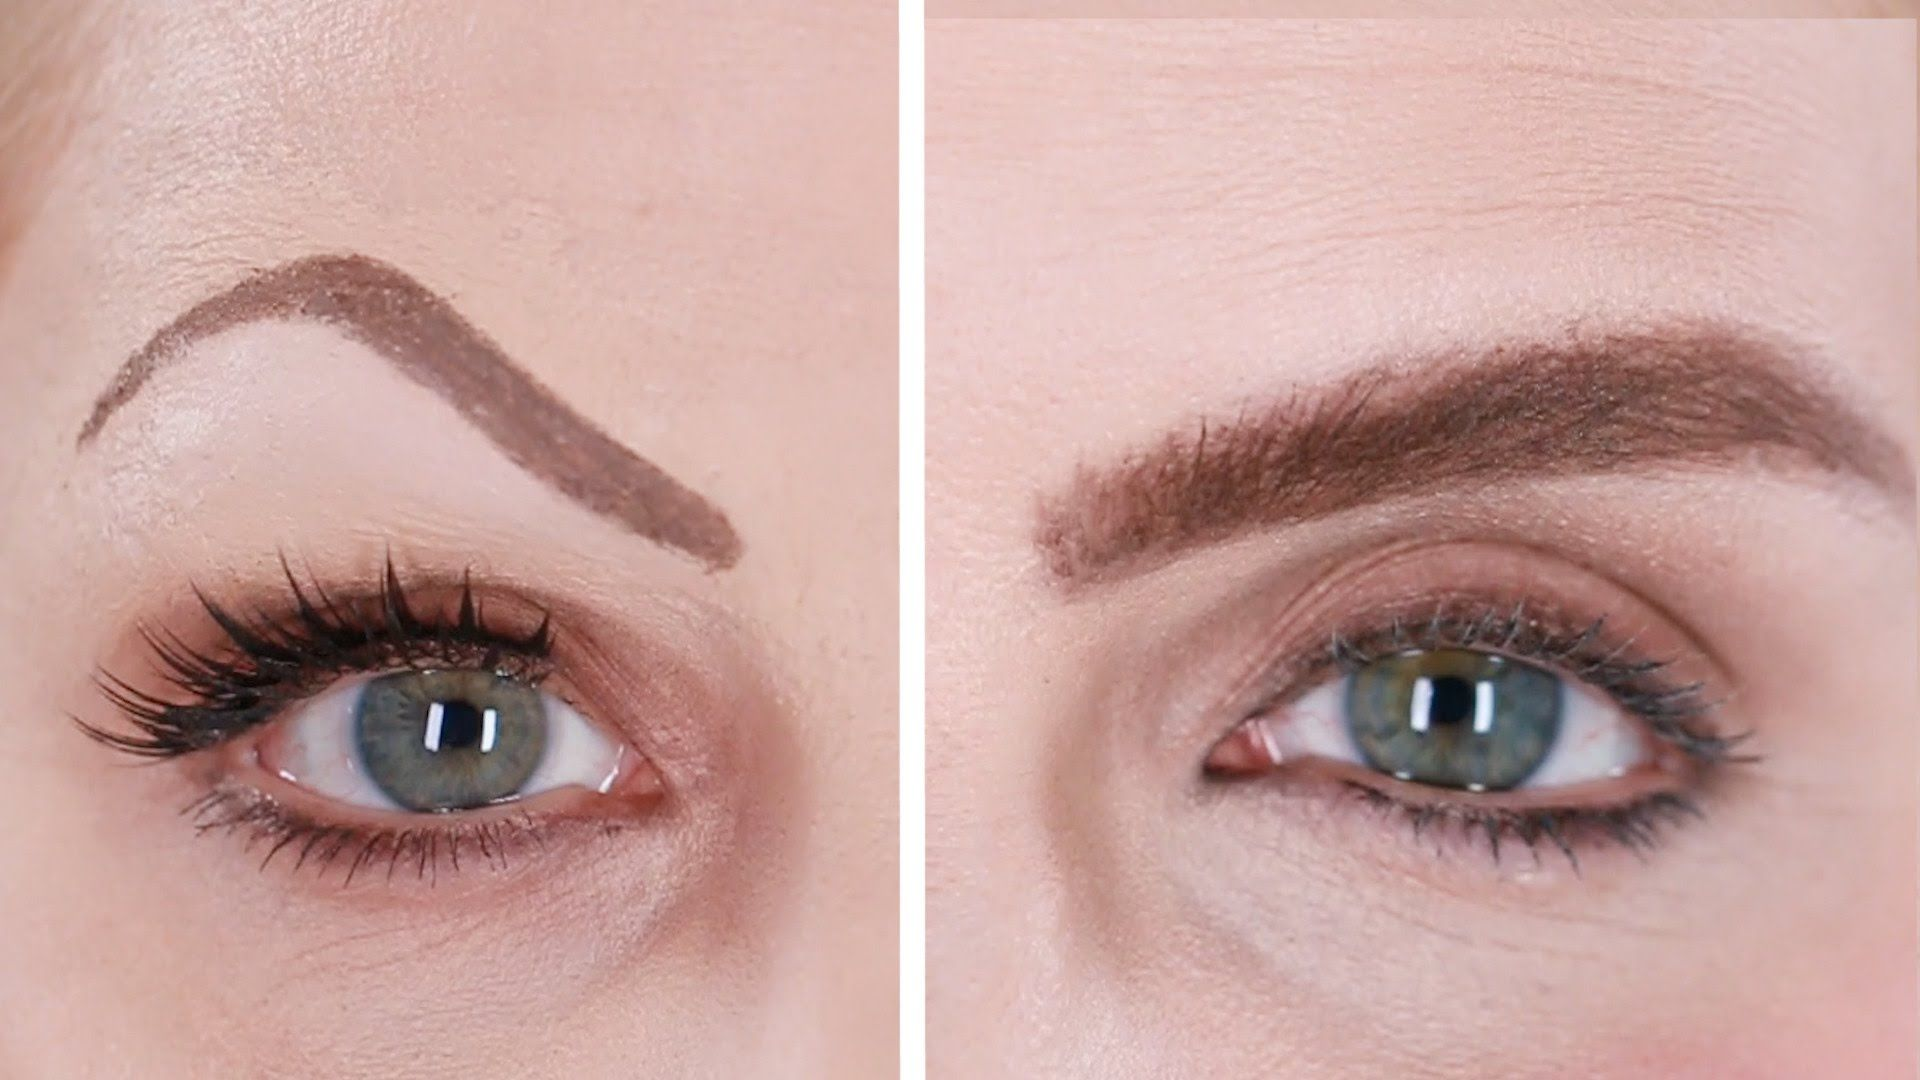 Eyebrows Throughout History Eyebrows Sultry Makeup Straight Eyebrows